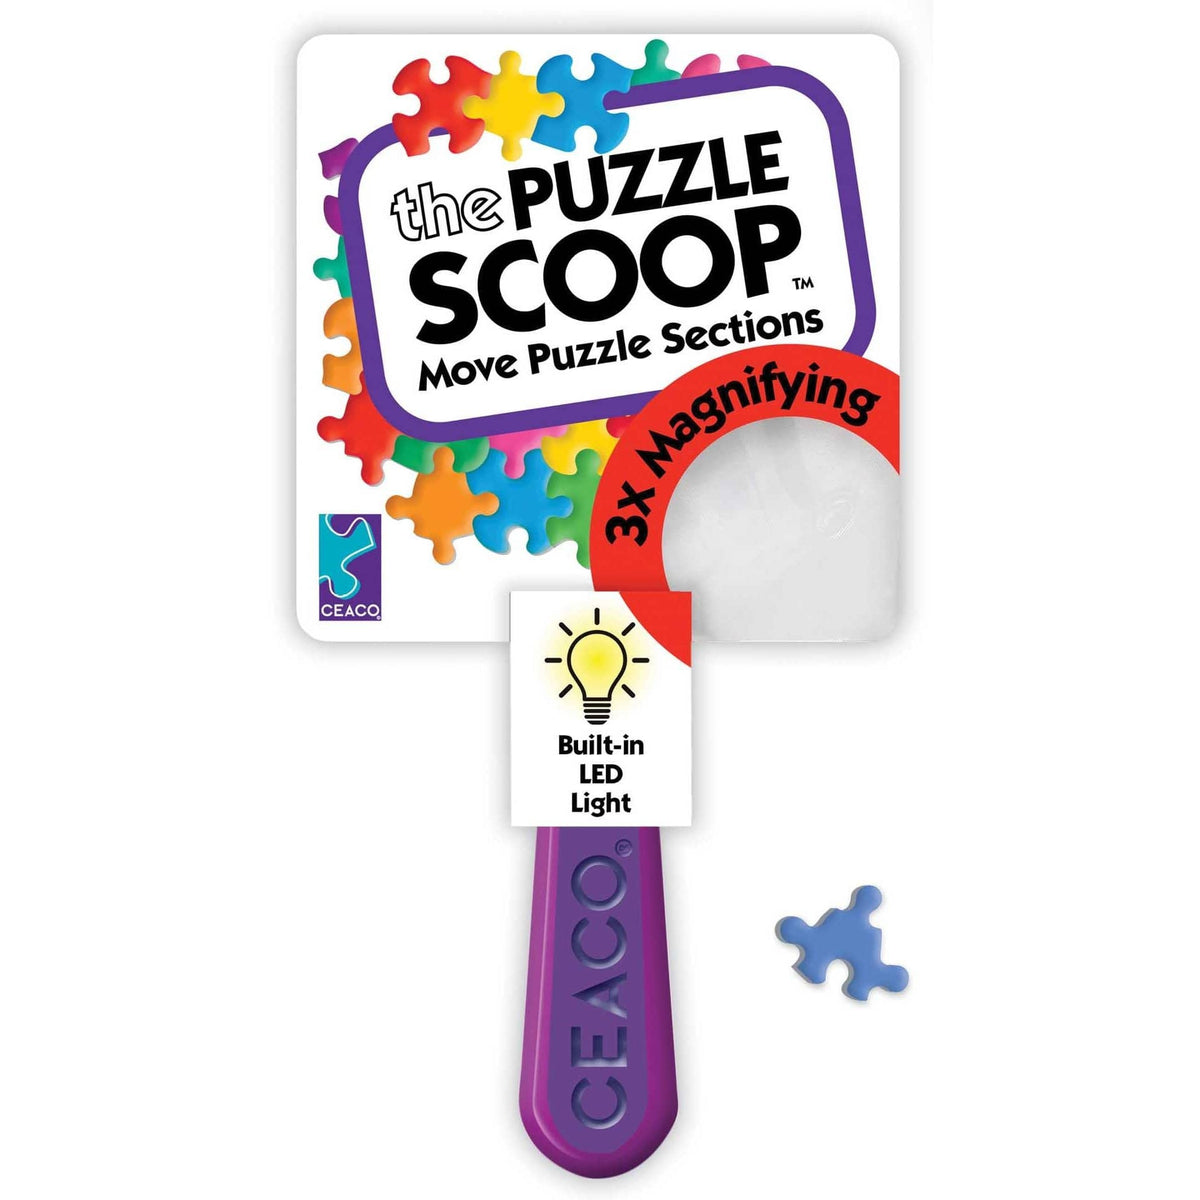 Puzzle Scoop Ceaco Puzzles/Playthings